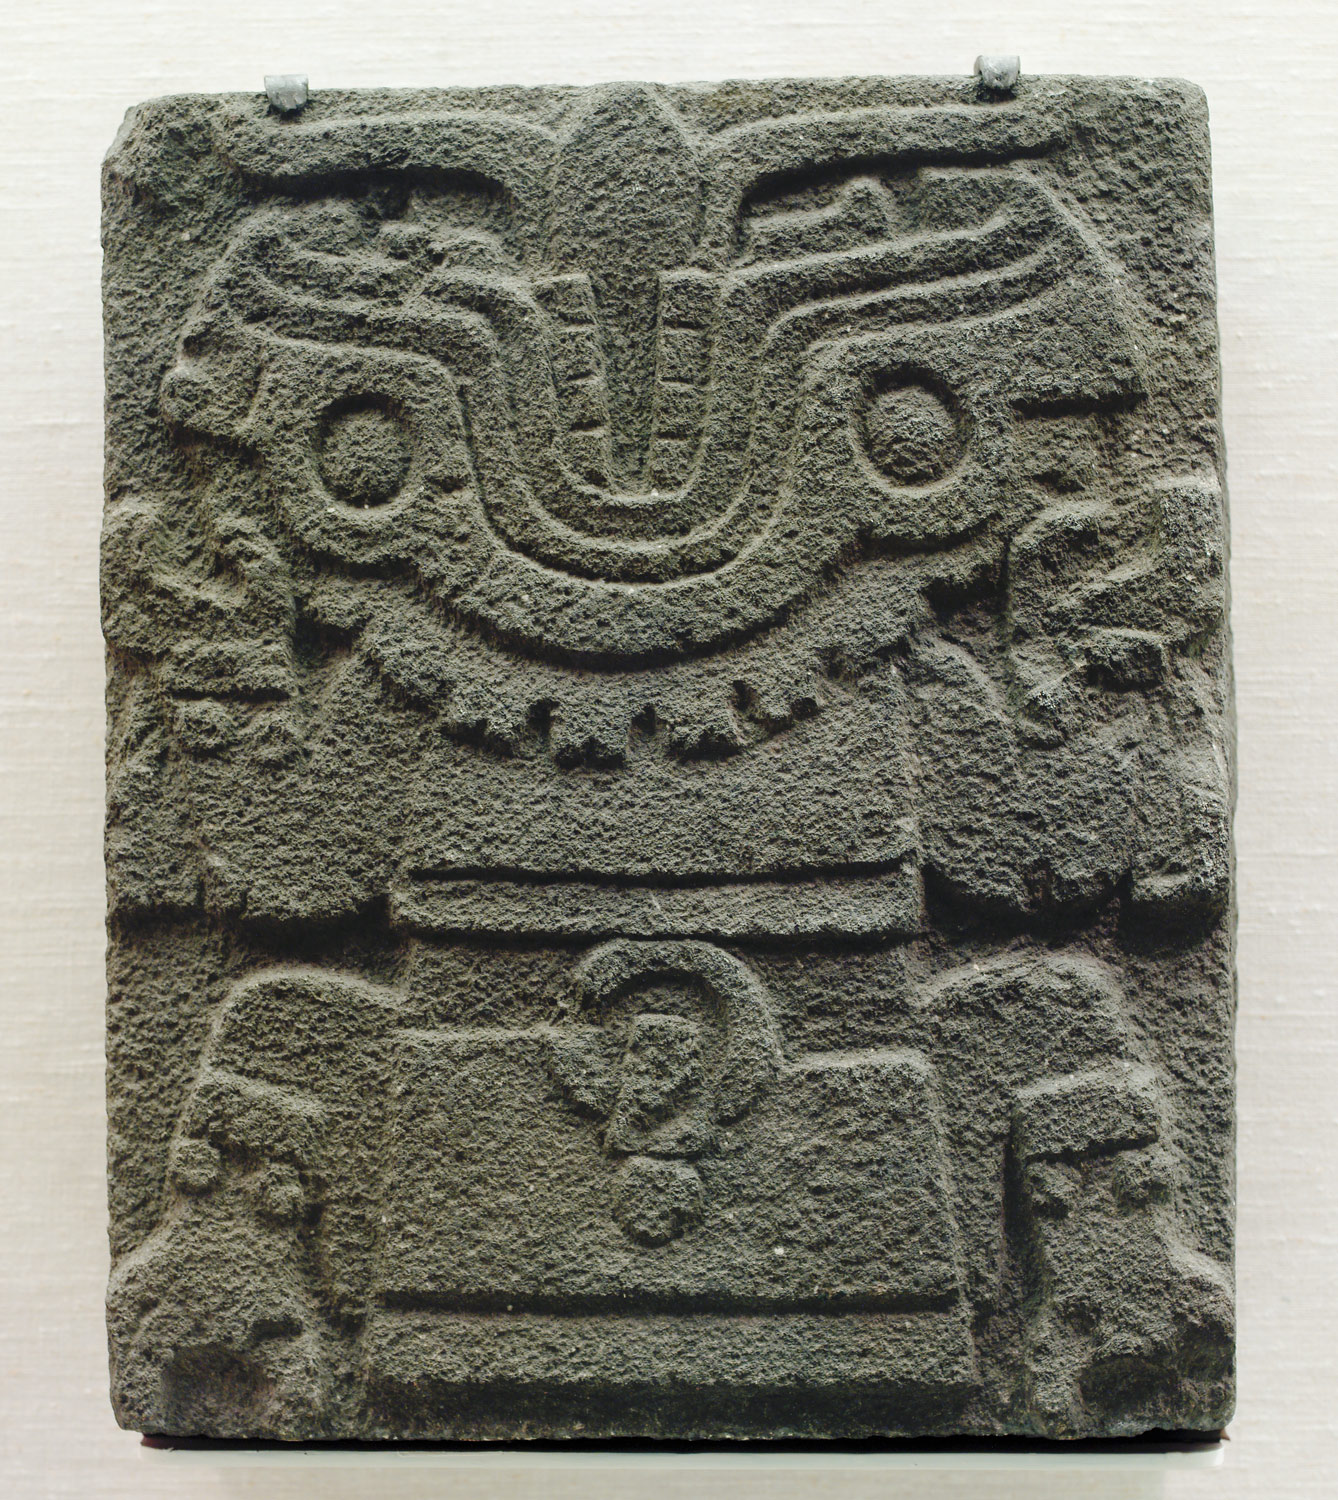 Earth Monster (Tlaltecuhtli)